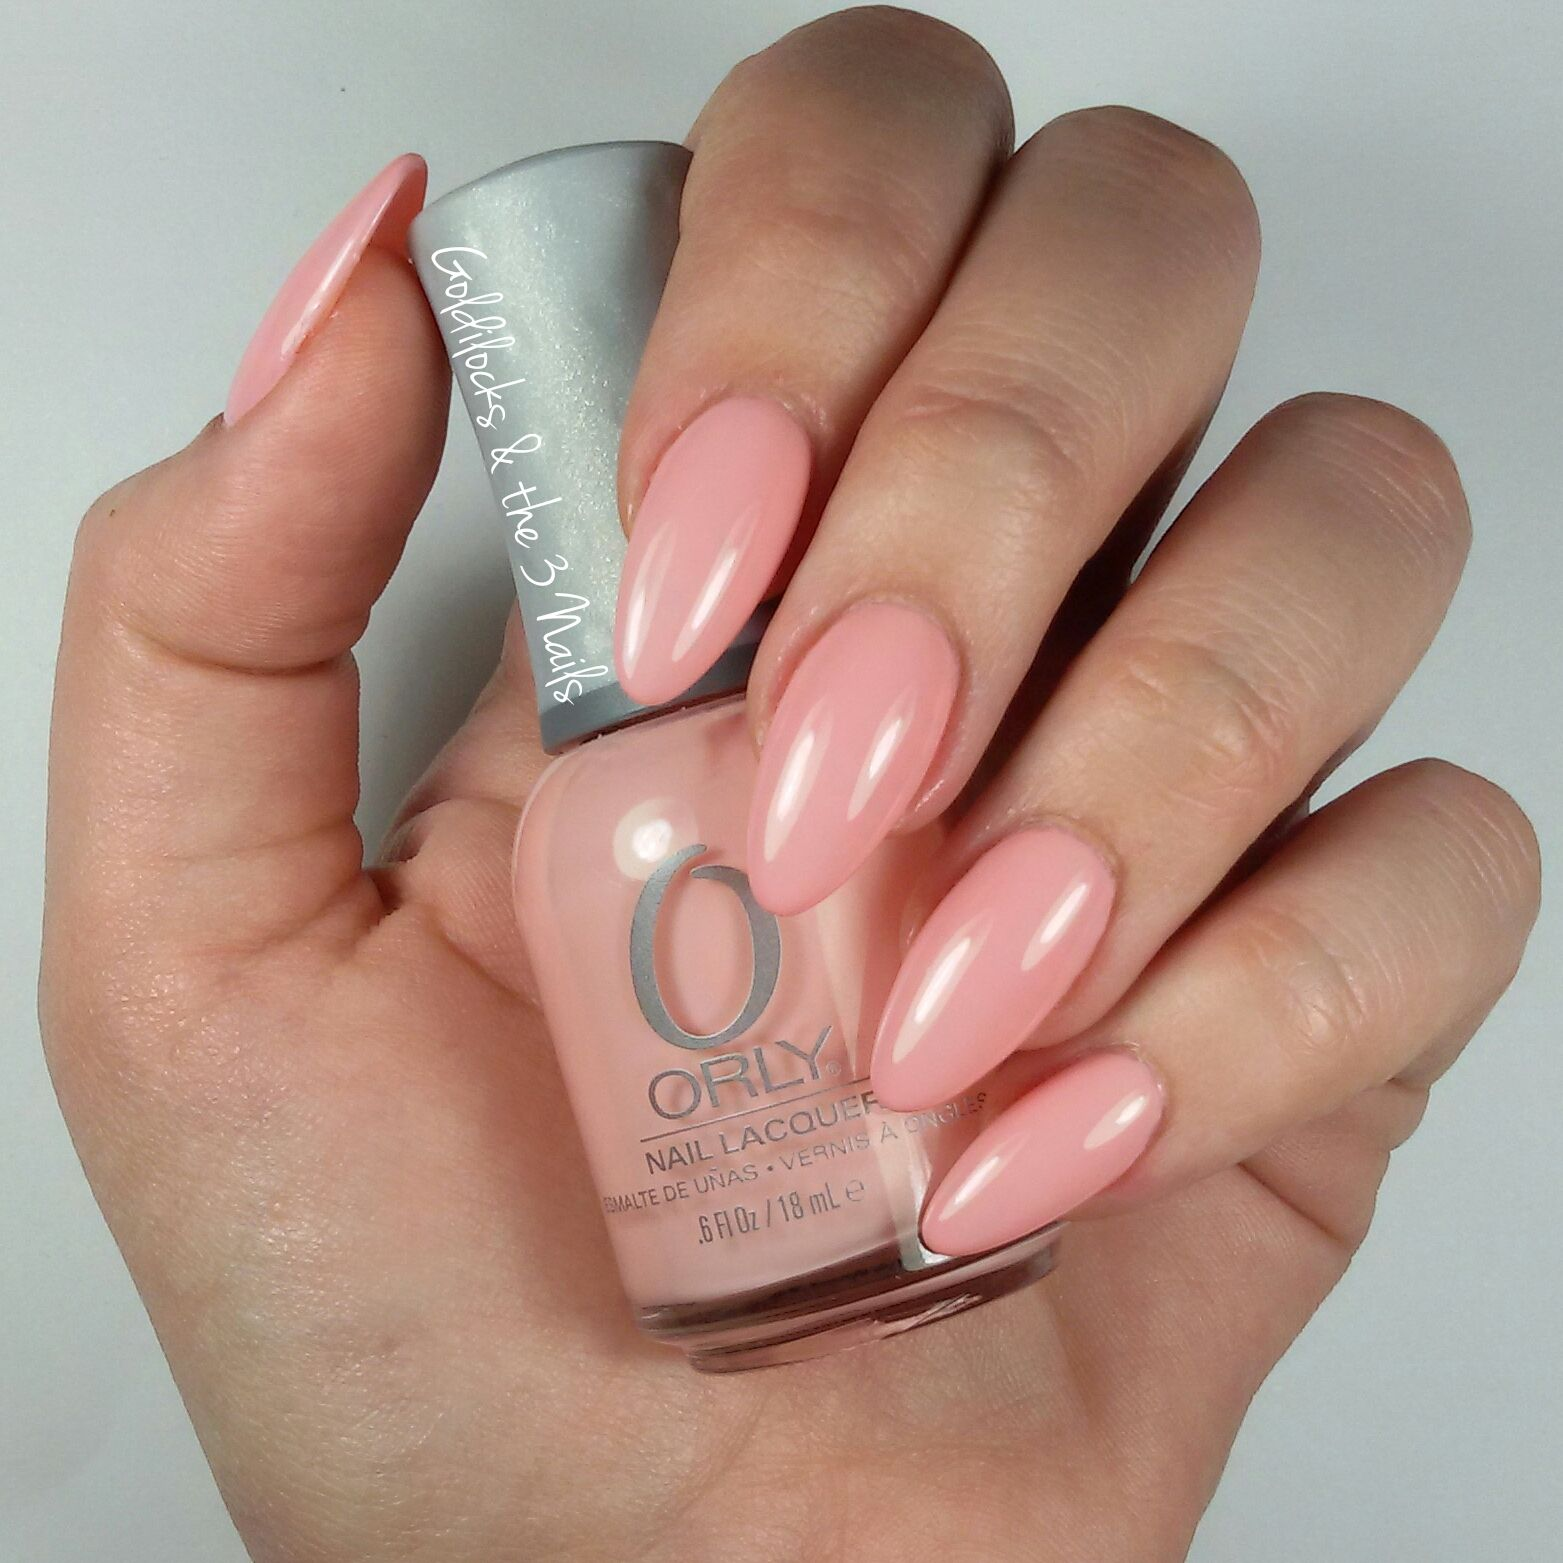 Orly | Lift the Veil | Gel Nails | Almond Nails | Pink Nails ...